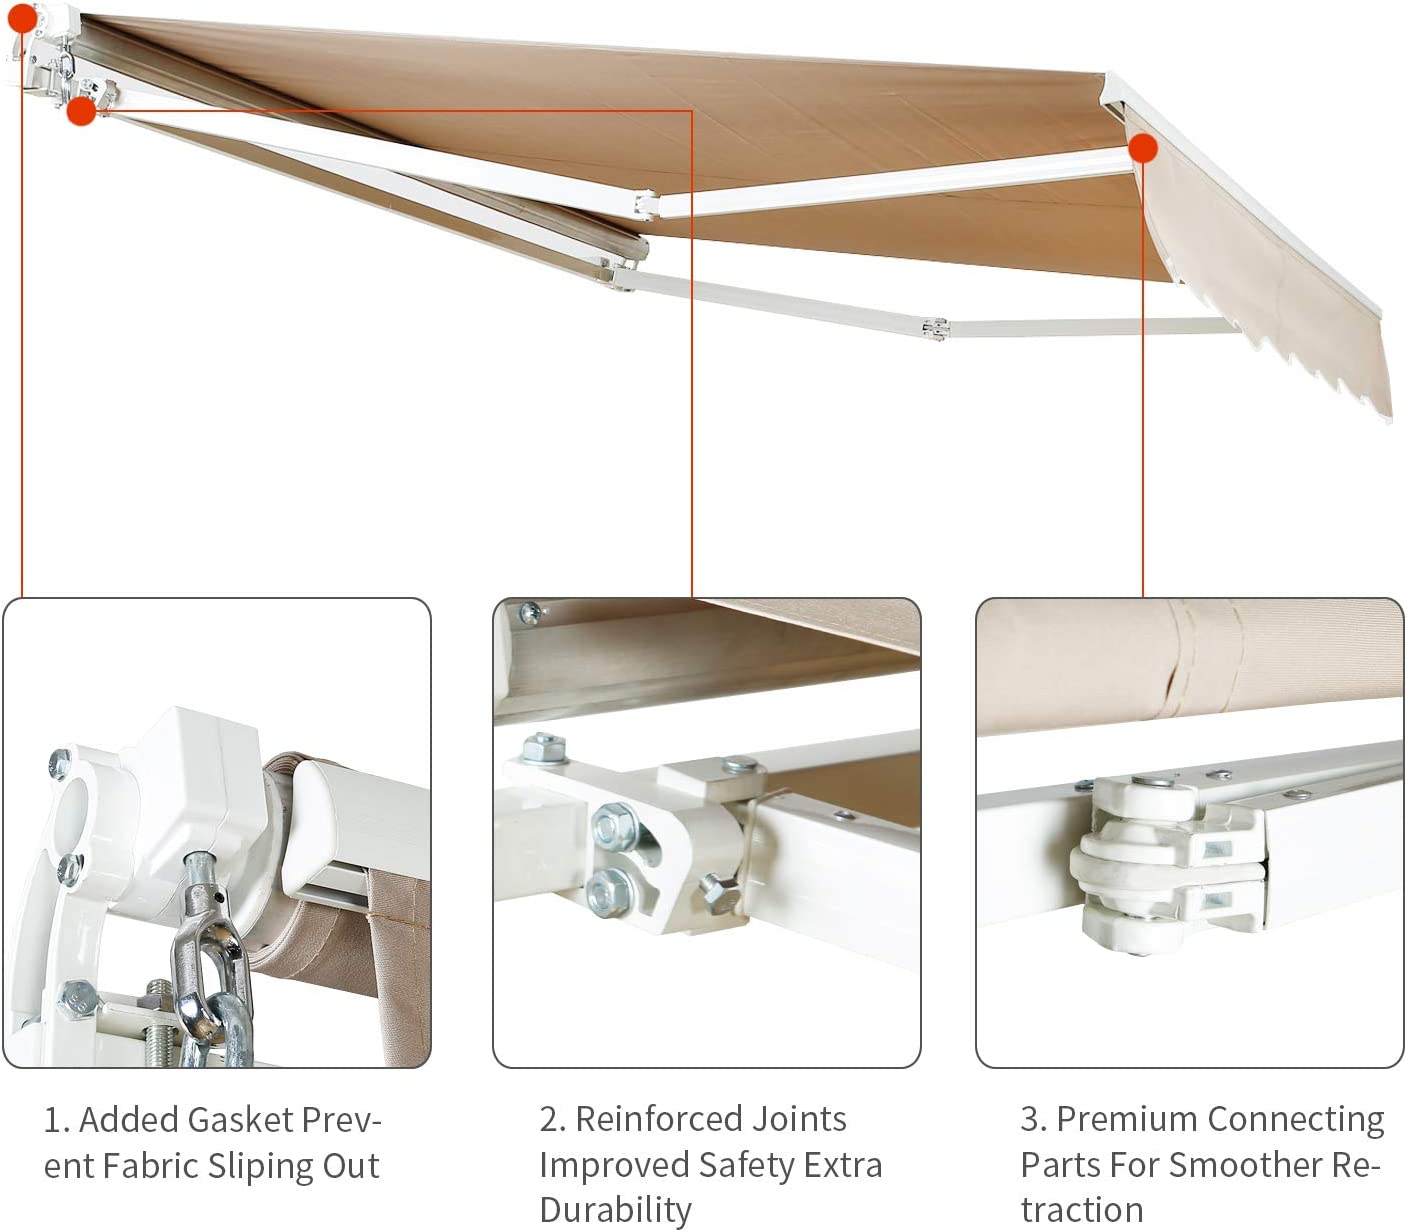 Aluminum Frame Crank Handle Aclumsy 12x8.2 Patio Awning Retractable Sun Shade Cover Outdoor Patio Canopy Beige